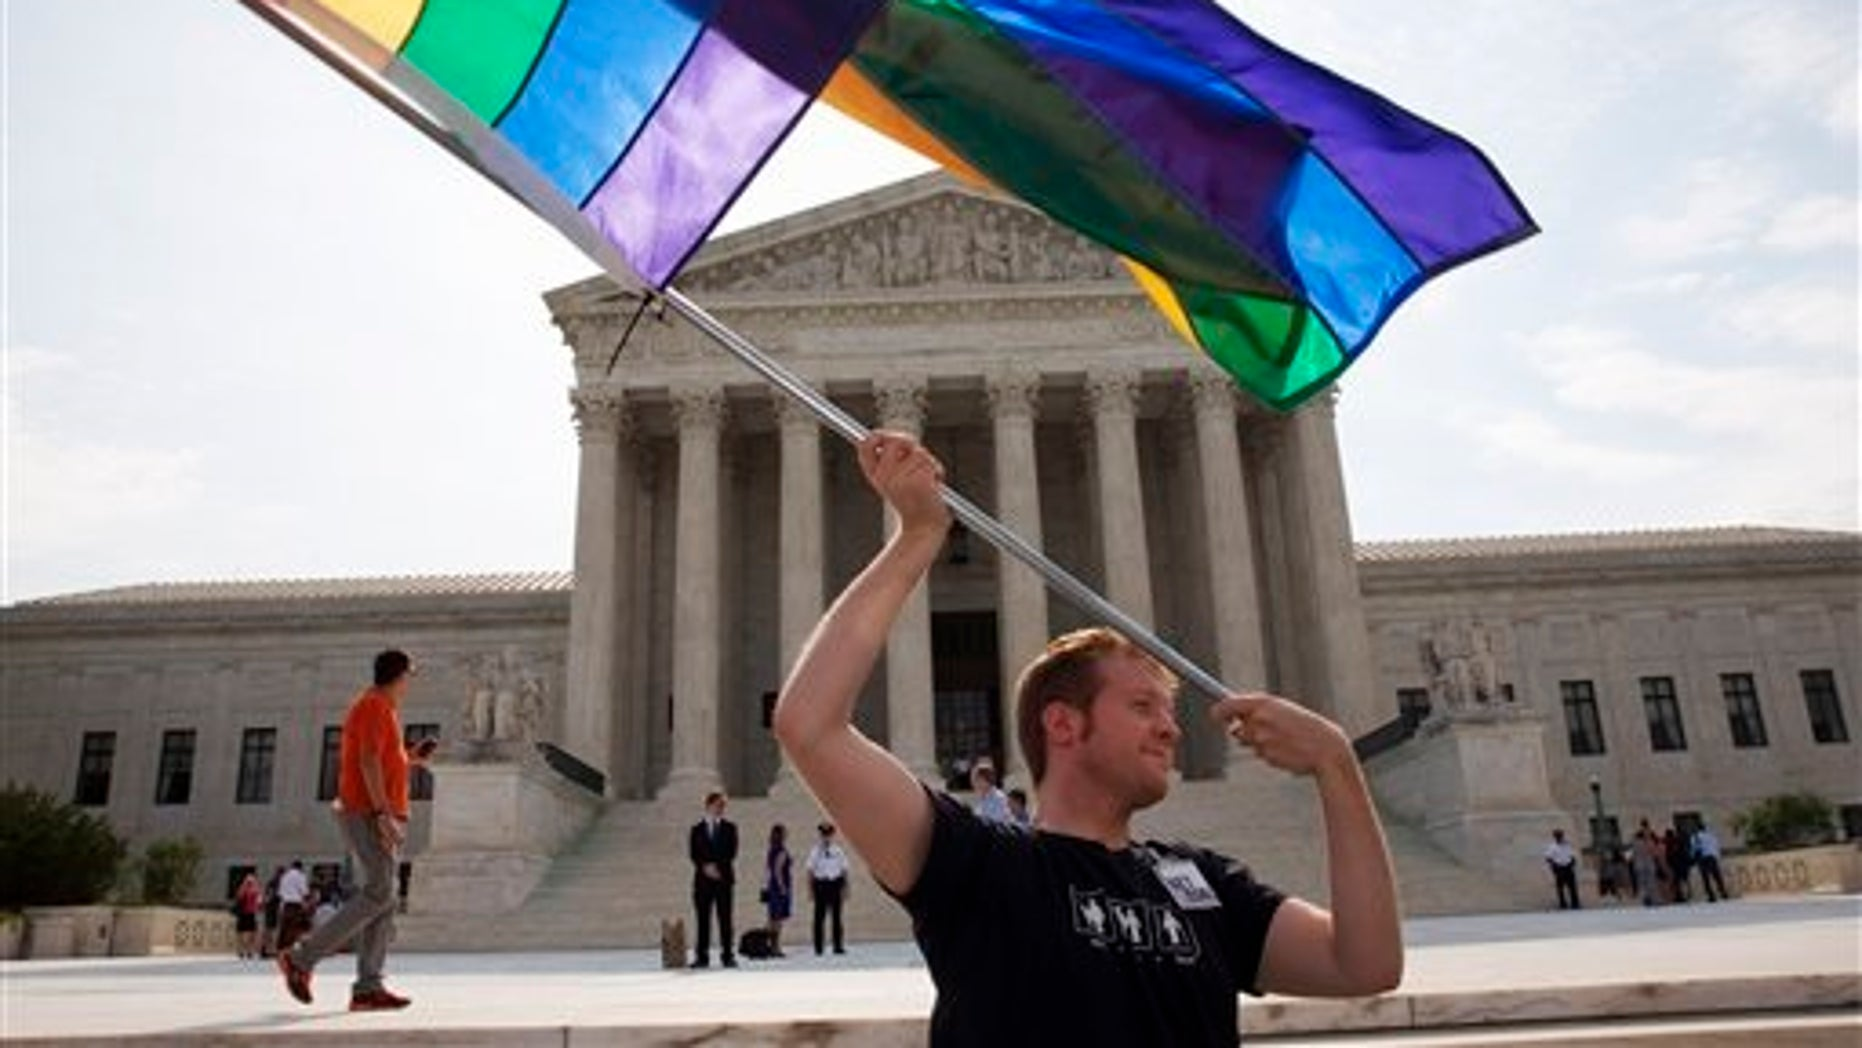 FILE -- June 25, 2015: John Becker, 30, of Silver Spring, Md., waves a rainbow flag in support of gay marriage outside the Supreme Court in Washington. (AP Photo/Jacquelyn Martin)